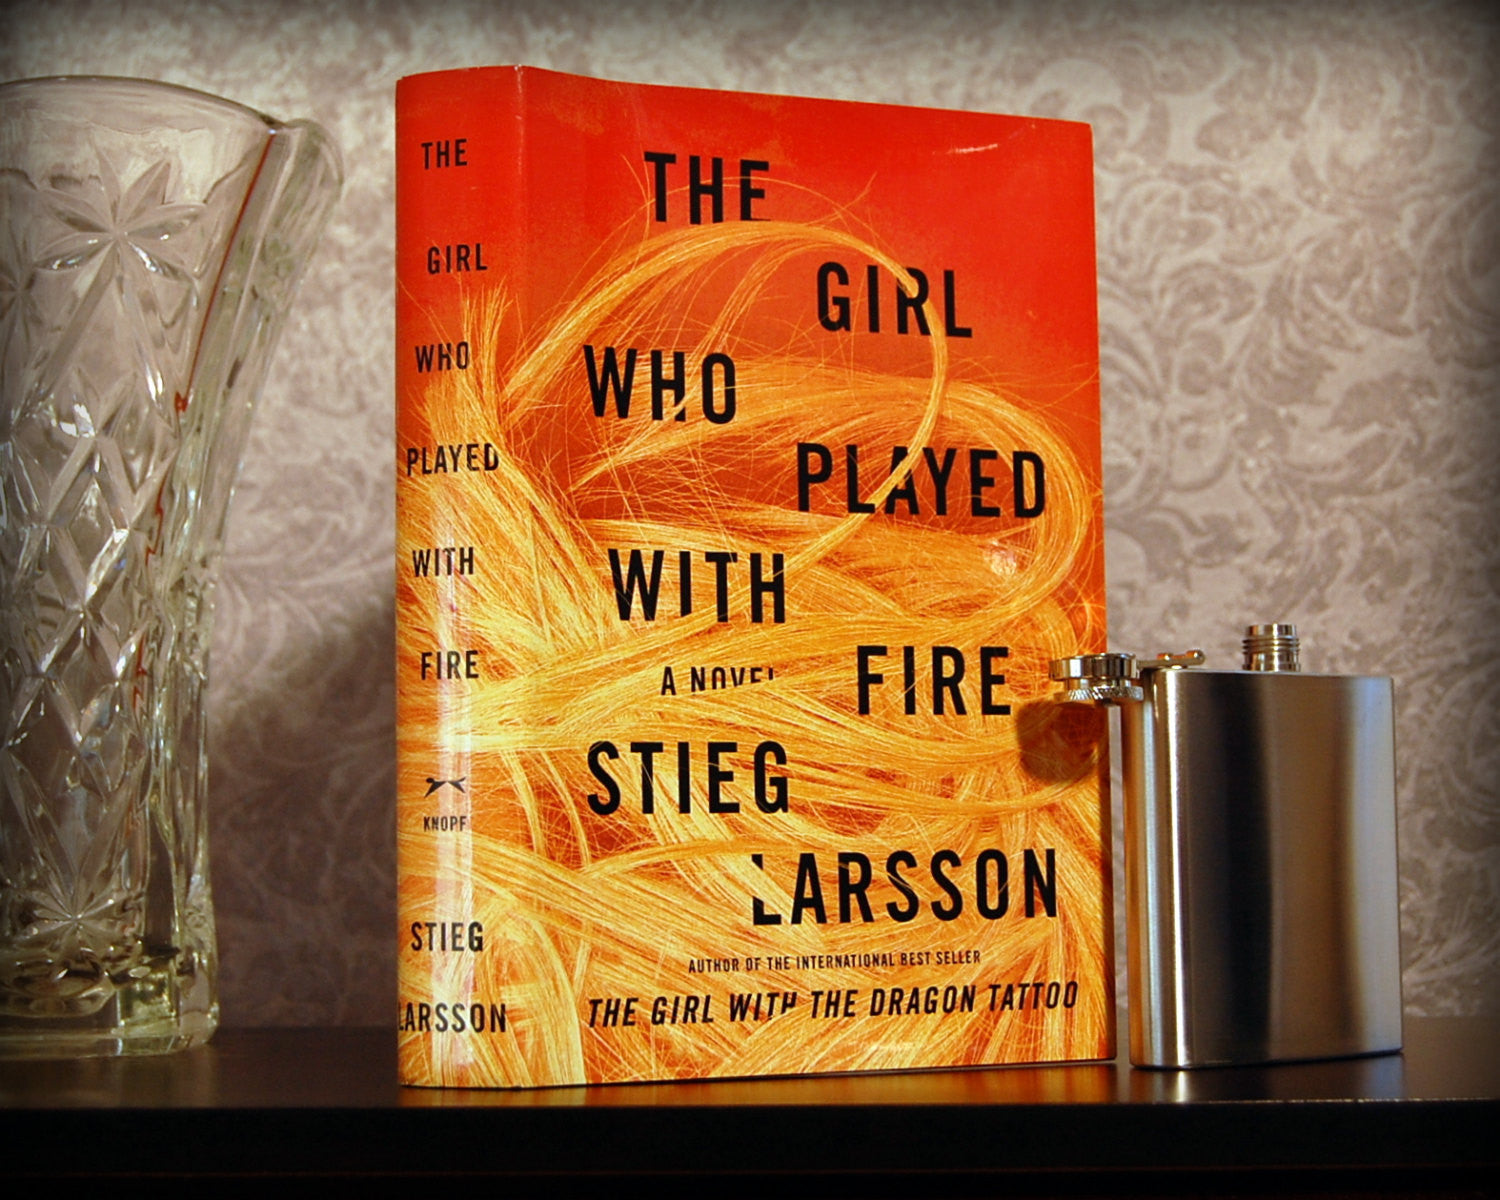 The Girl Who Played with Fire / Stieg Larsson - Secret Safe Books  - 1